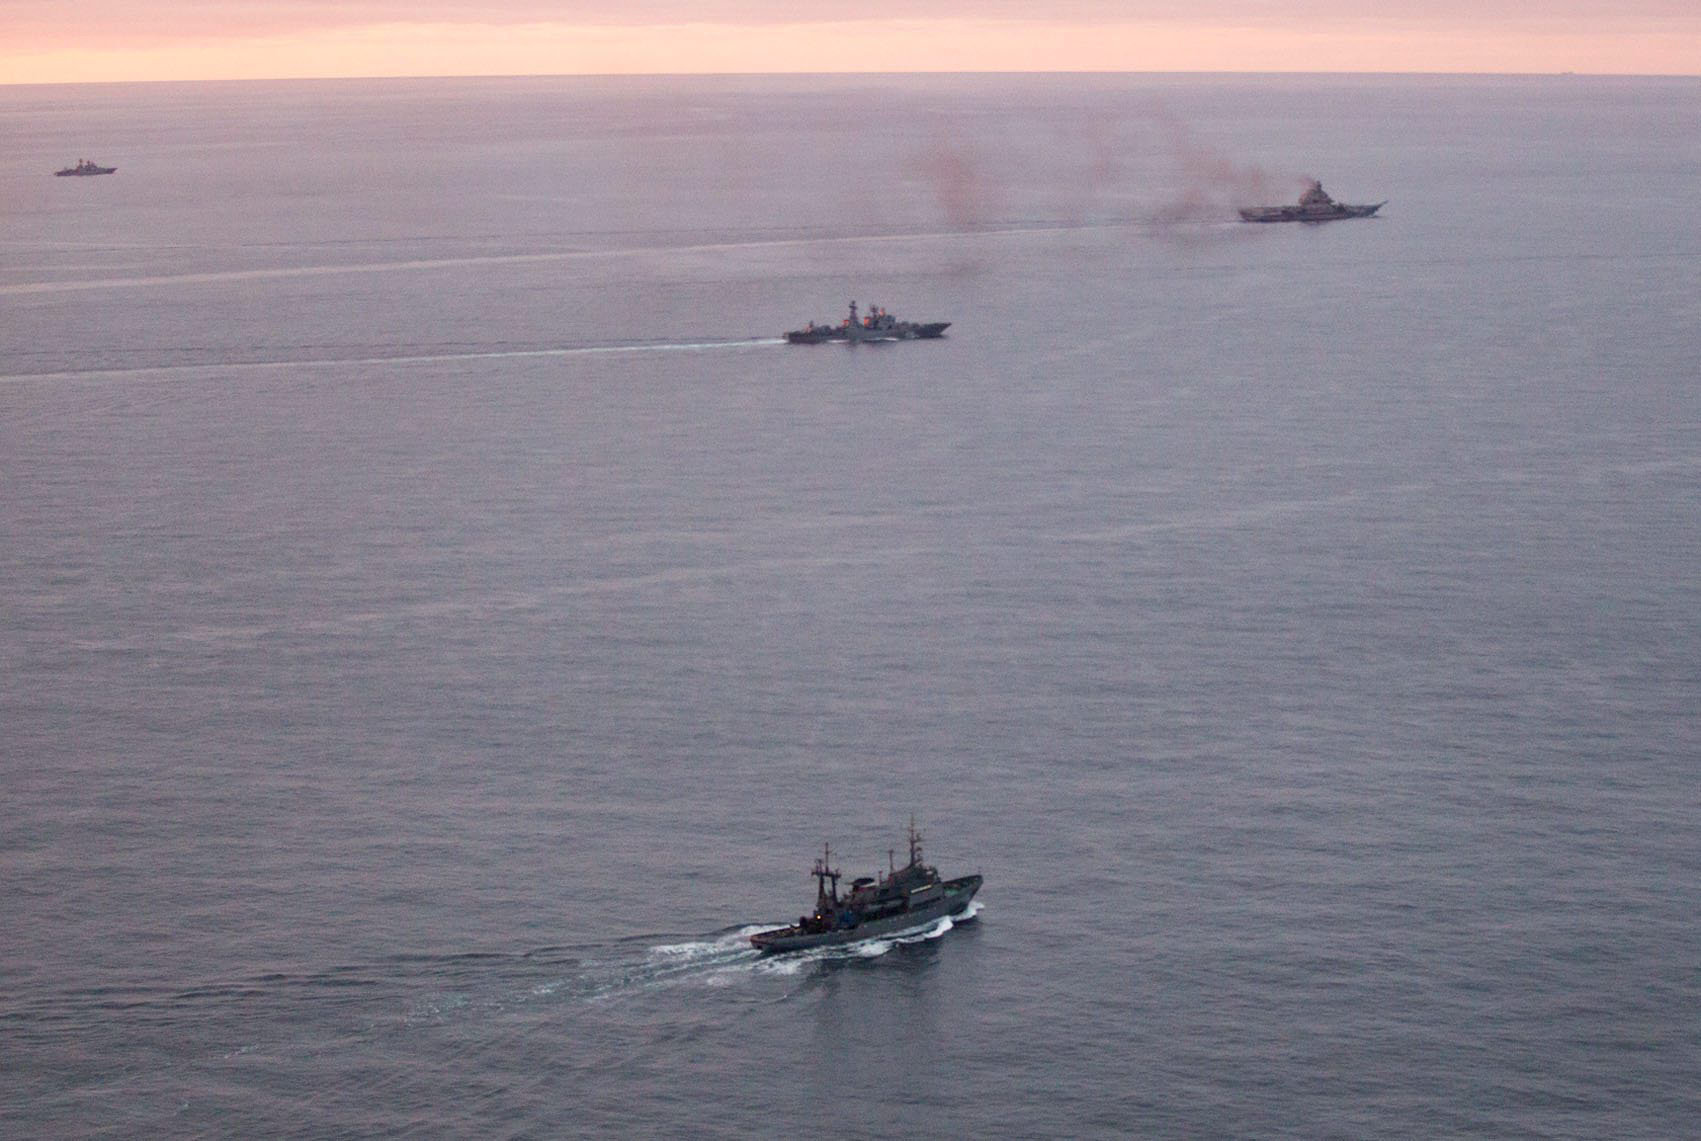 A photo taken from a Norwegian surveillance aircraft shows a group of Russian navy ships in international waters off the coast of Northern Norway